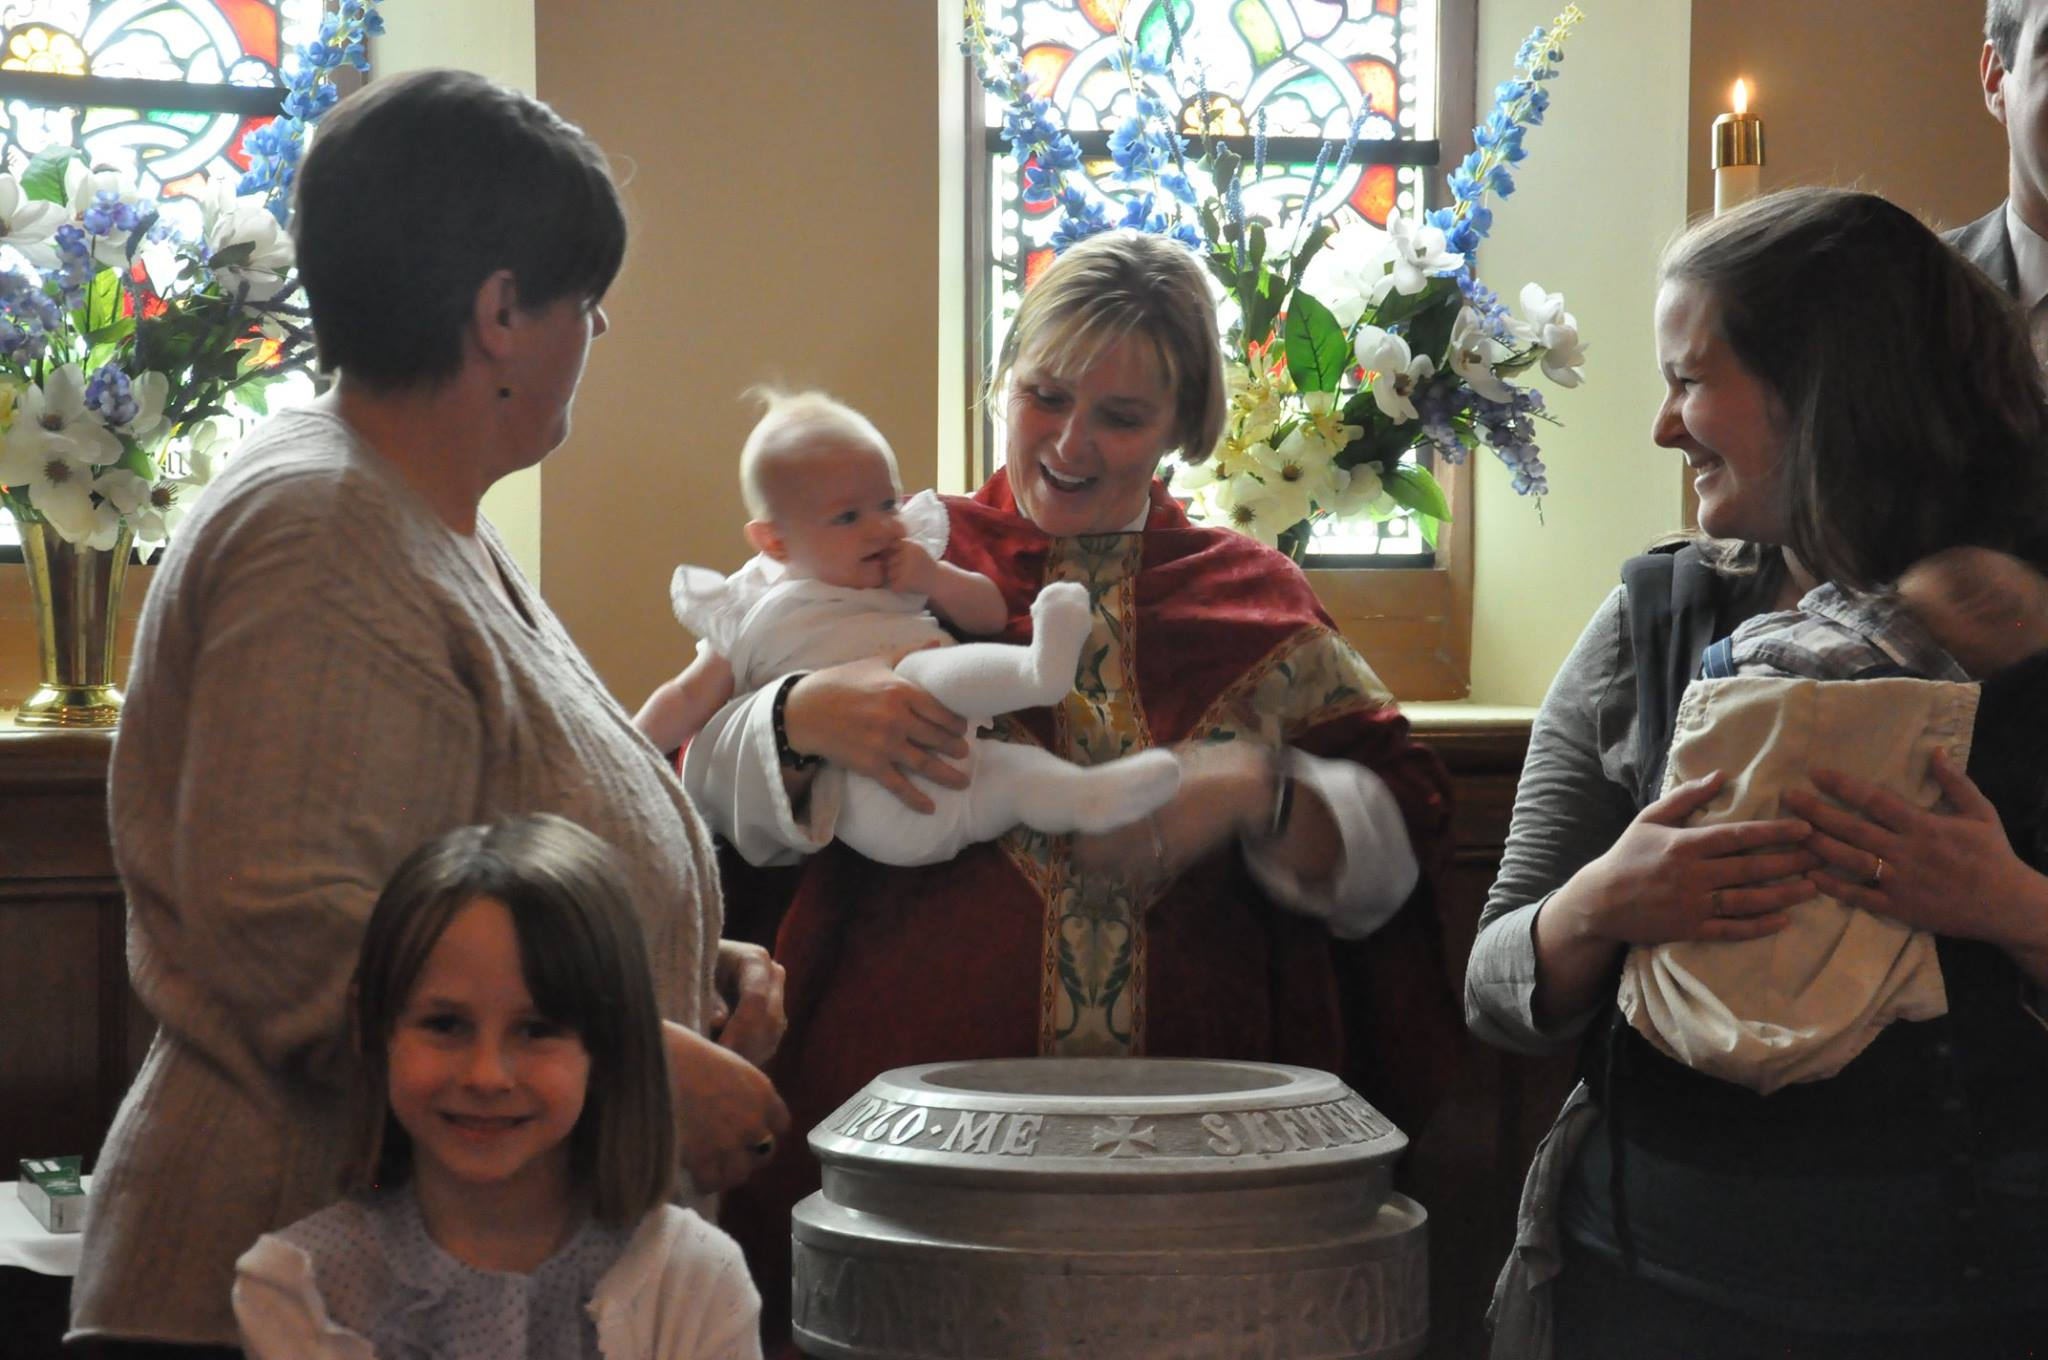 Baptising a child